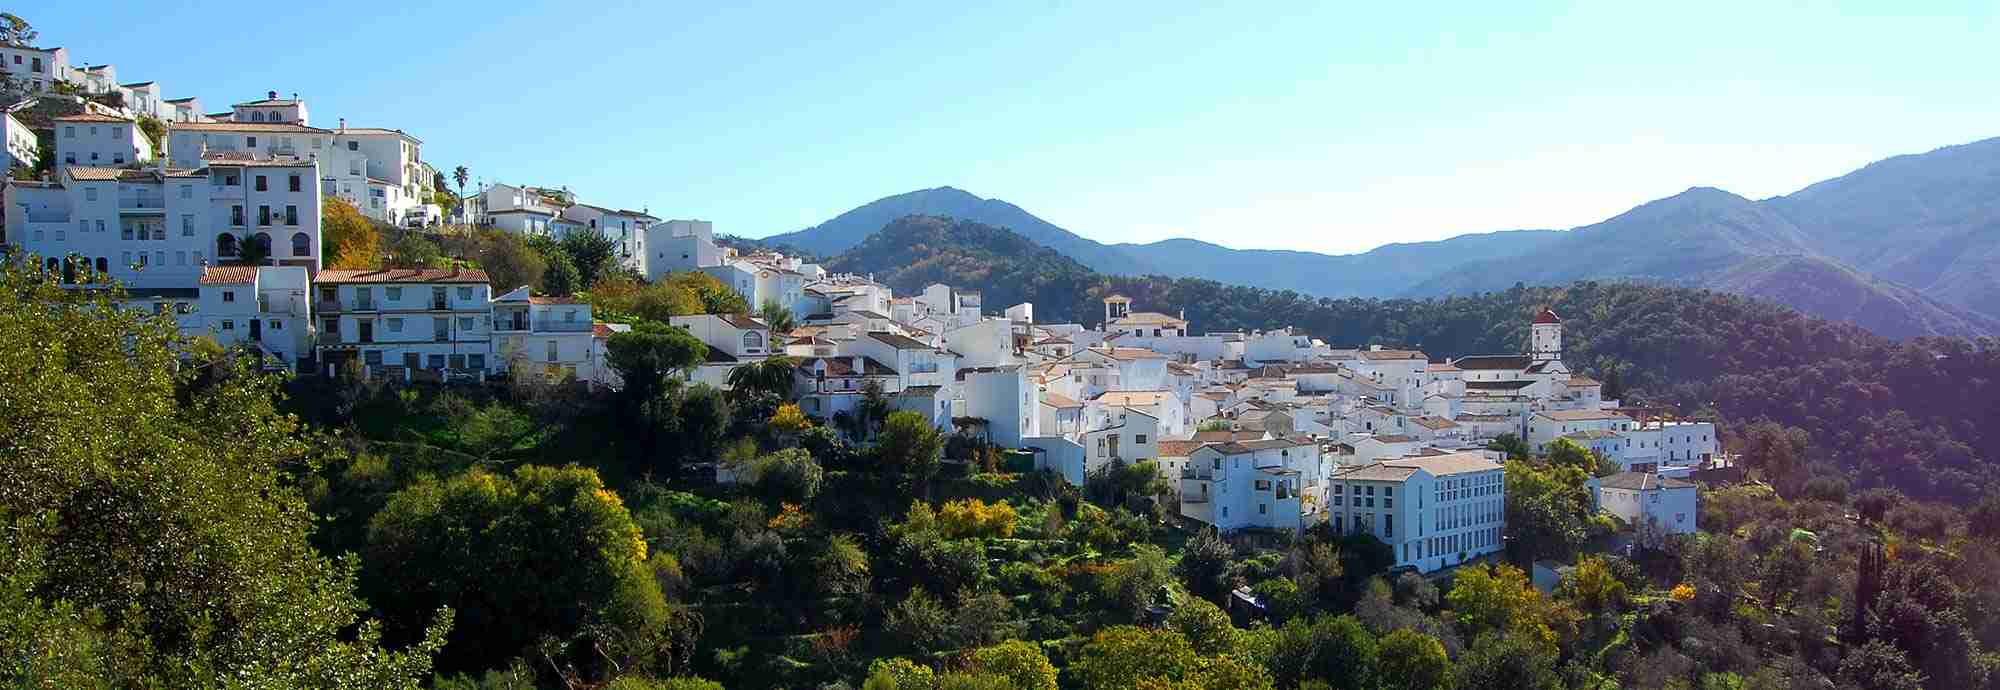 Deals for Holiday  Villas in Malaga near the beach